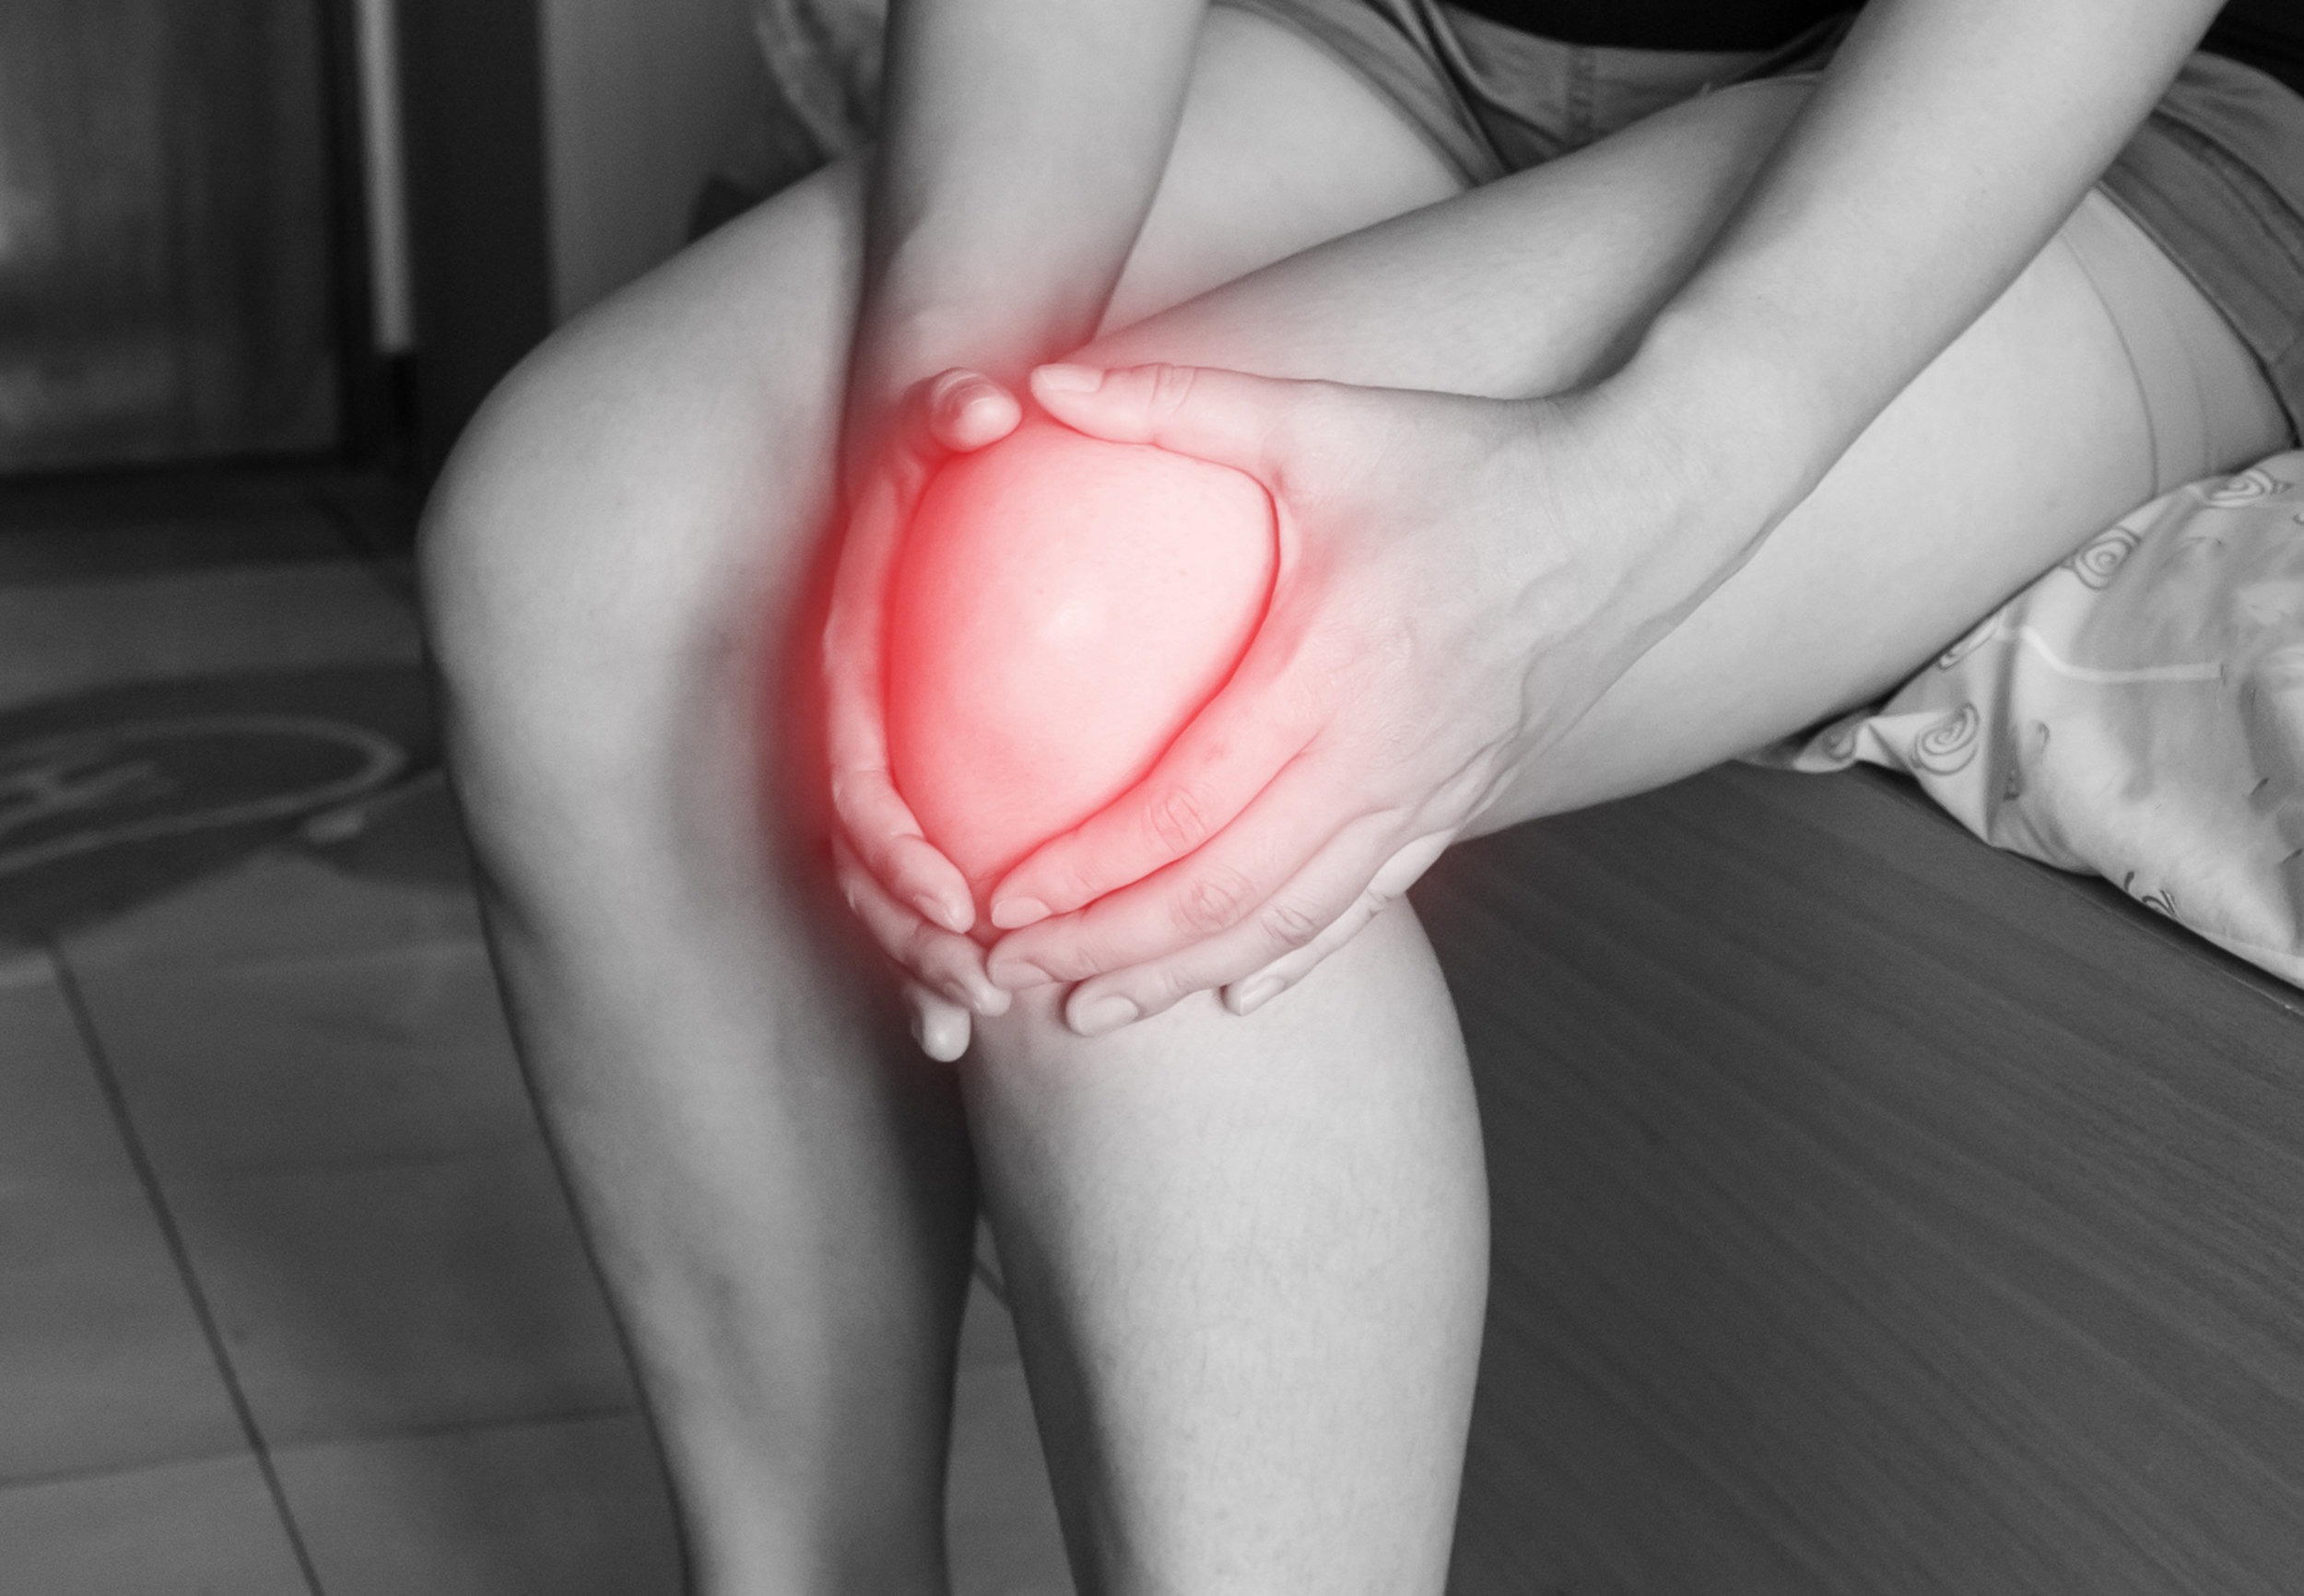 48 Hours of Knee Swelling? - See a doctor